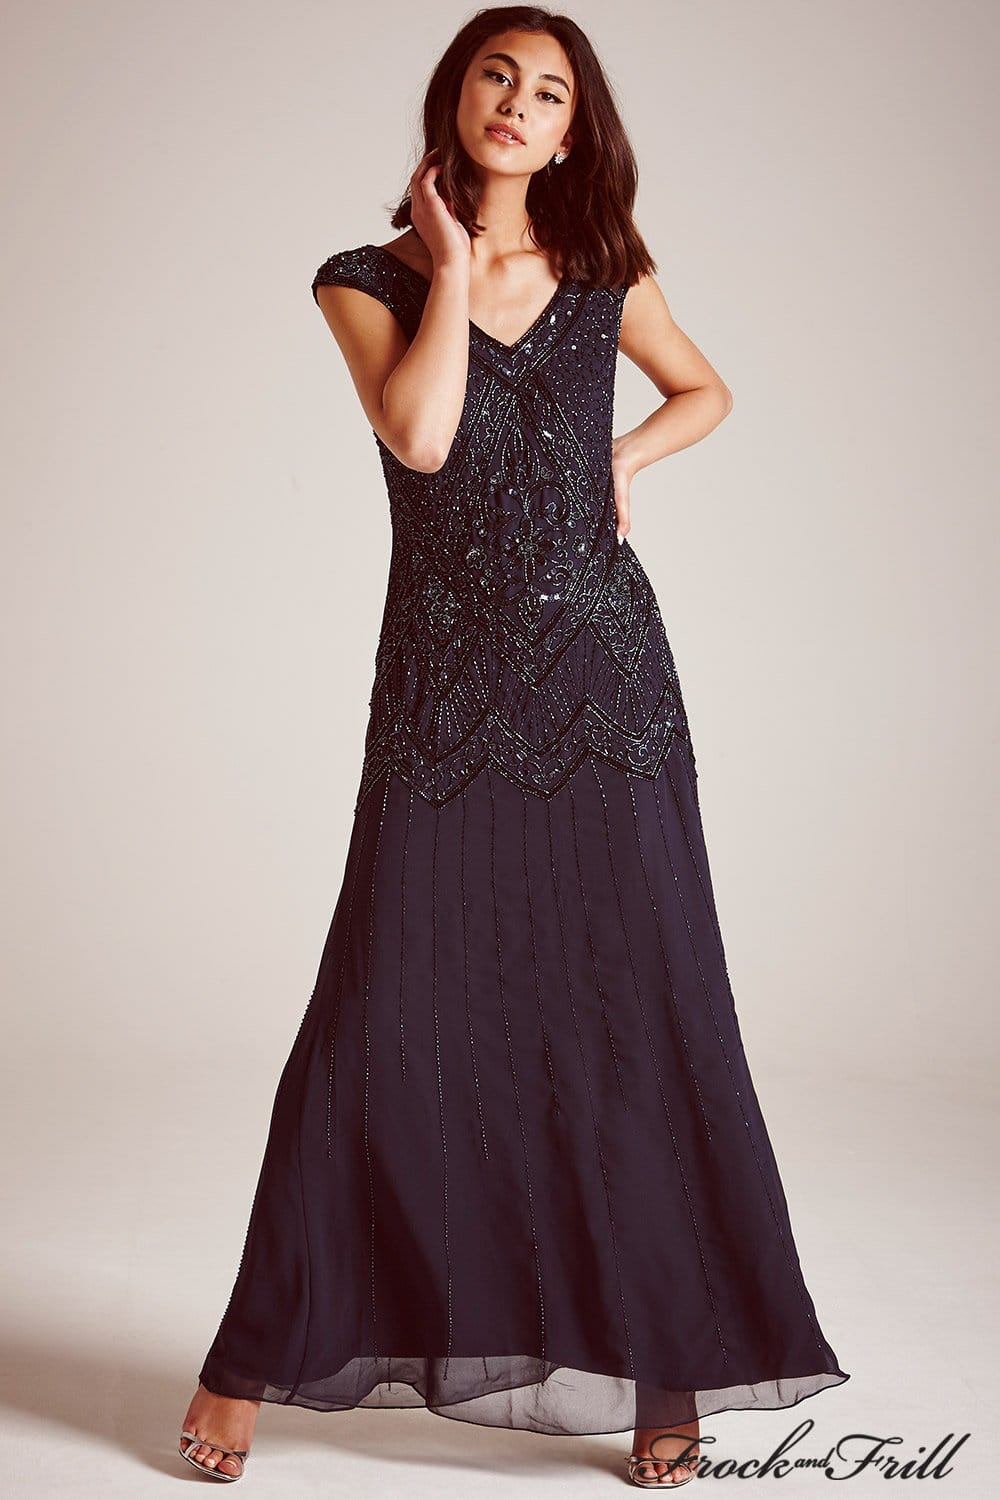 frock and frill navy embellished sequin maxi dress frock and frill from little mistress uk. Black Bedroom Furniture Sets. Home Design Ideas